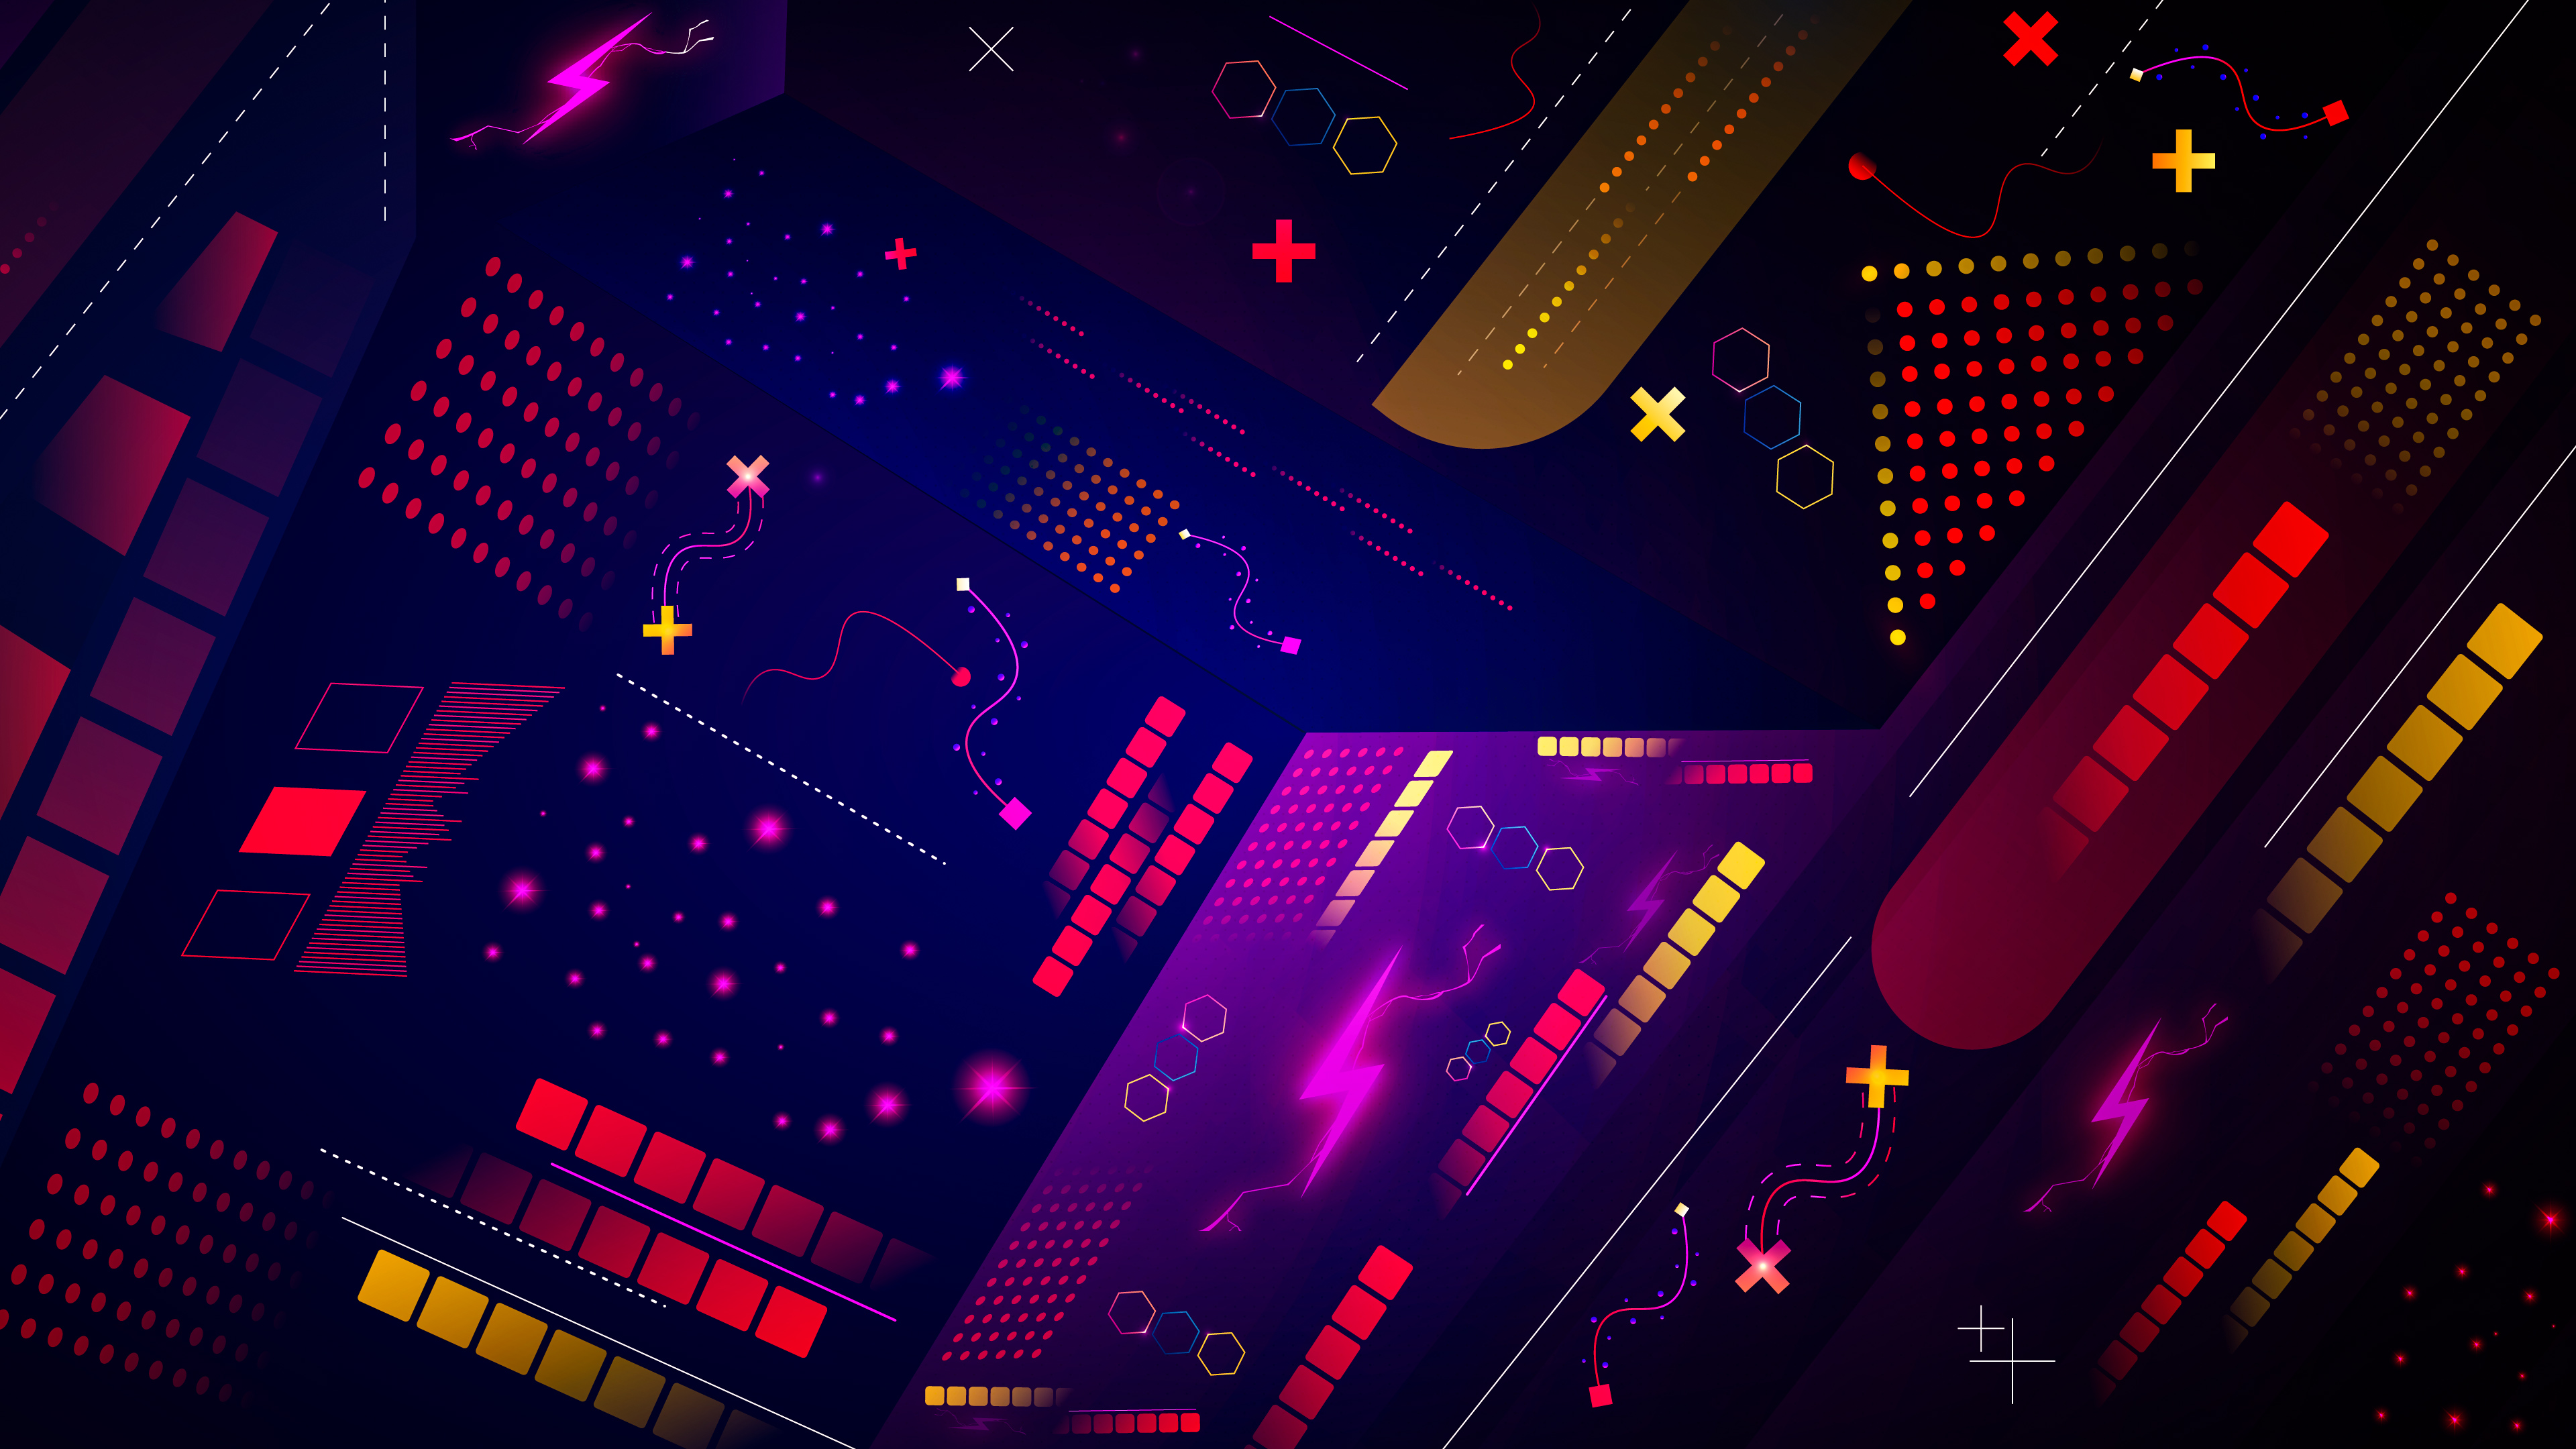 Vector design retro 4k hd abstract 4k wallpapers images backgrounds photos and pictures - Background images 4k hd ...